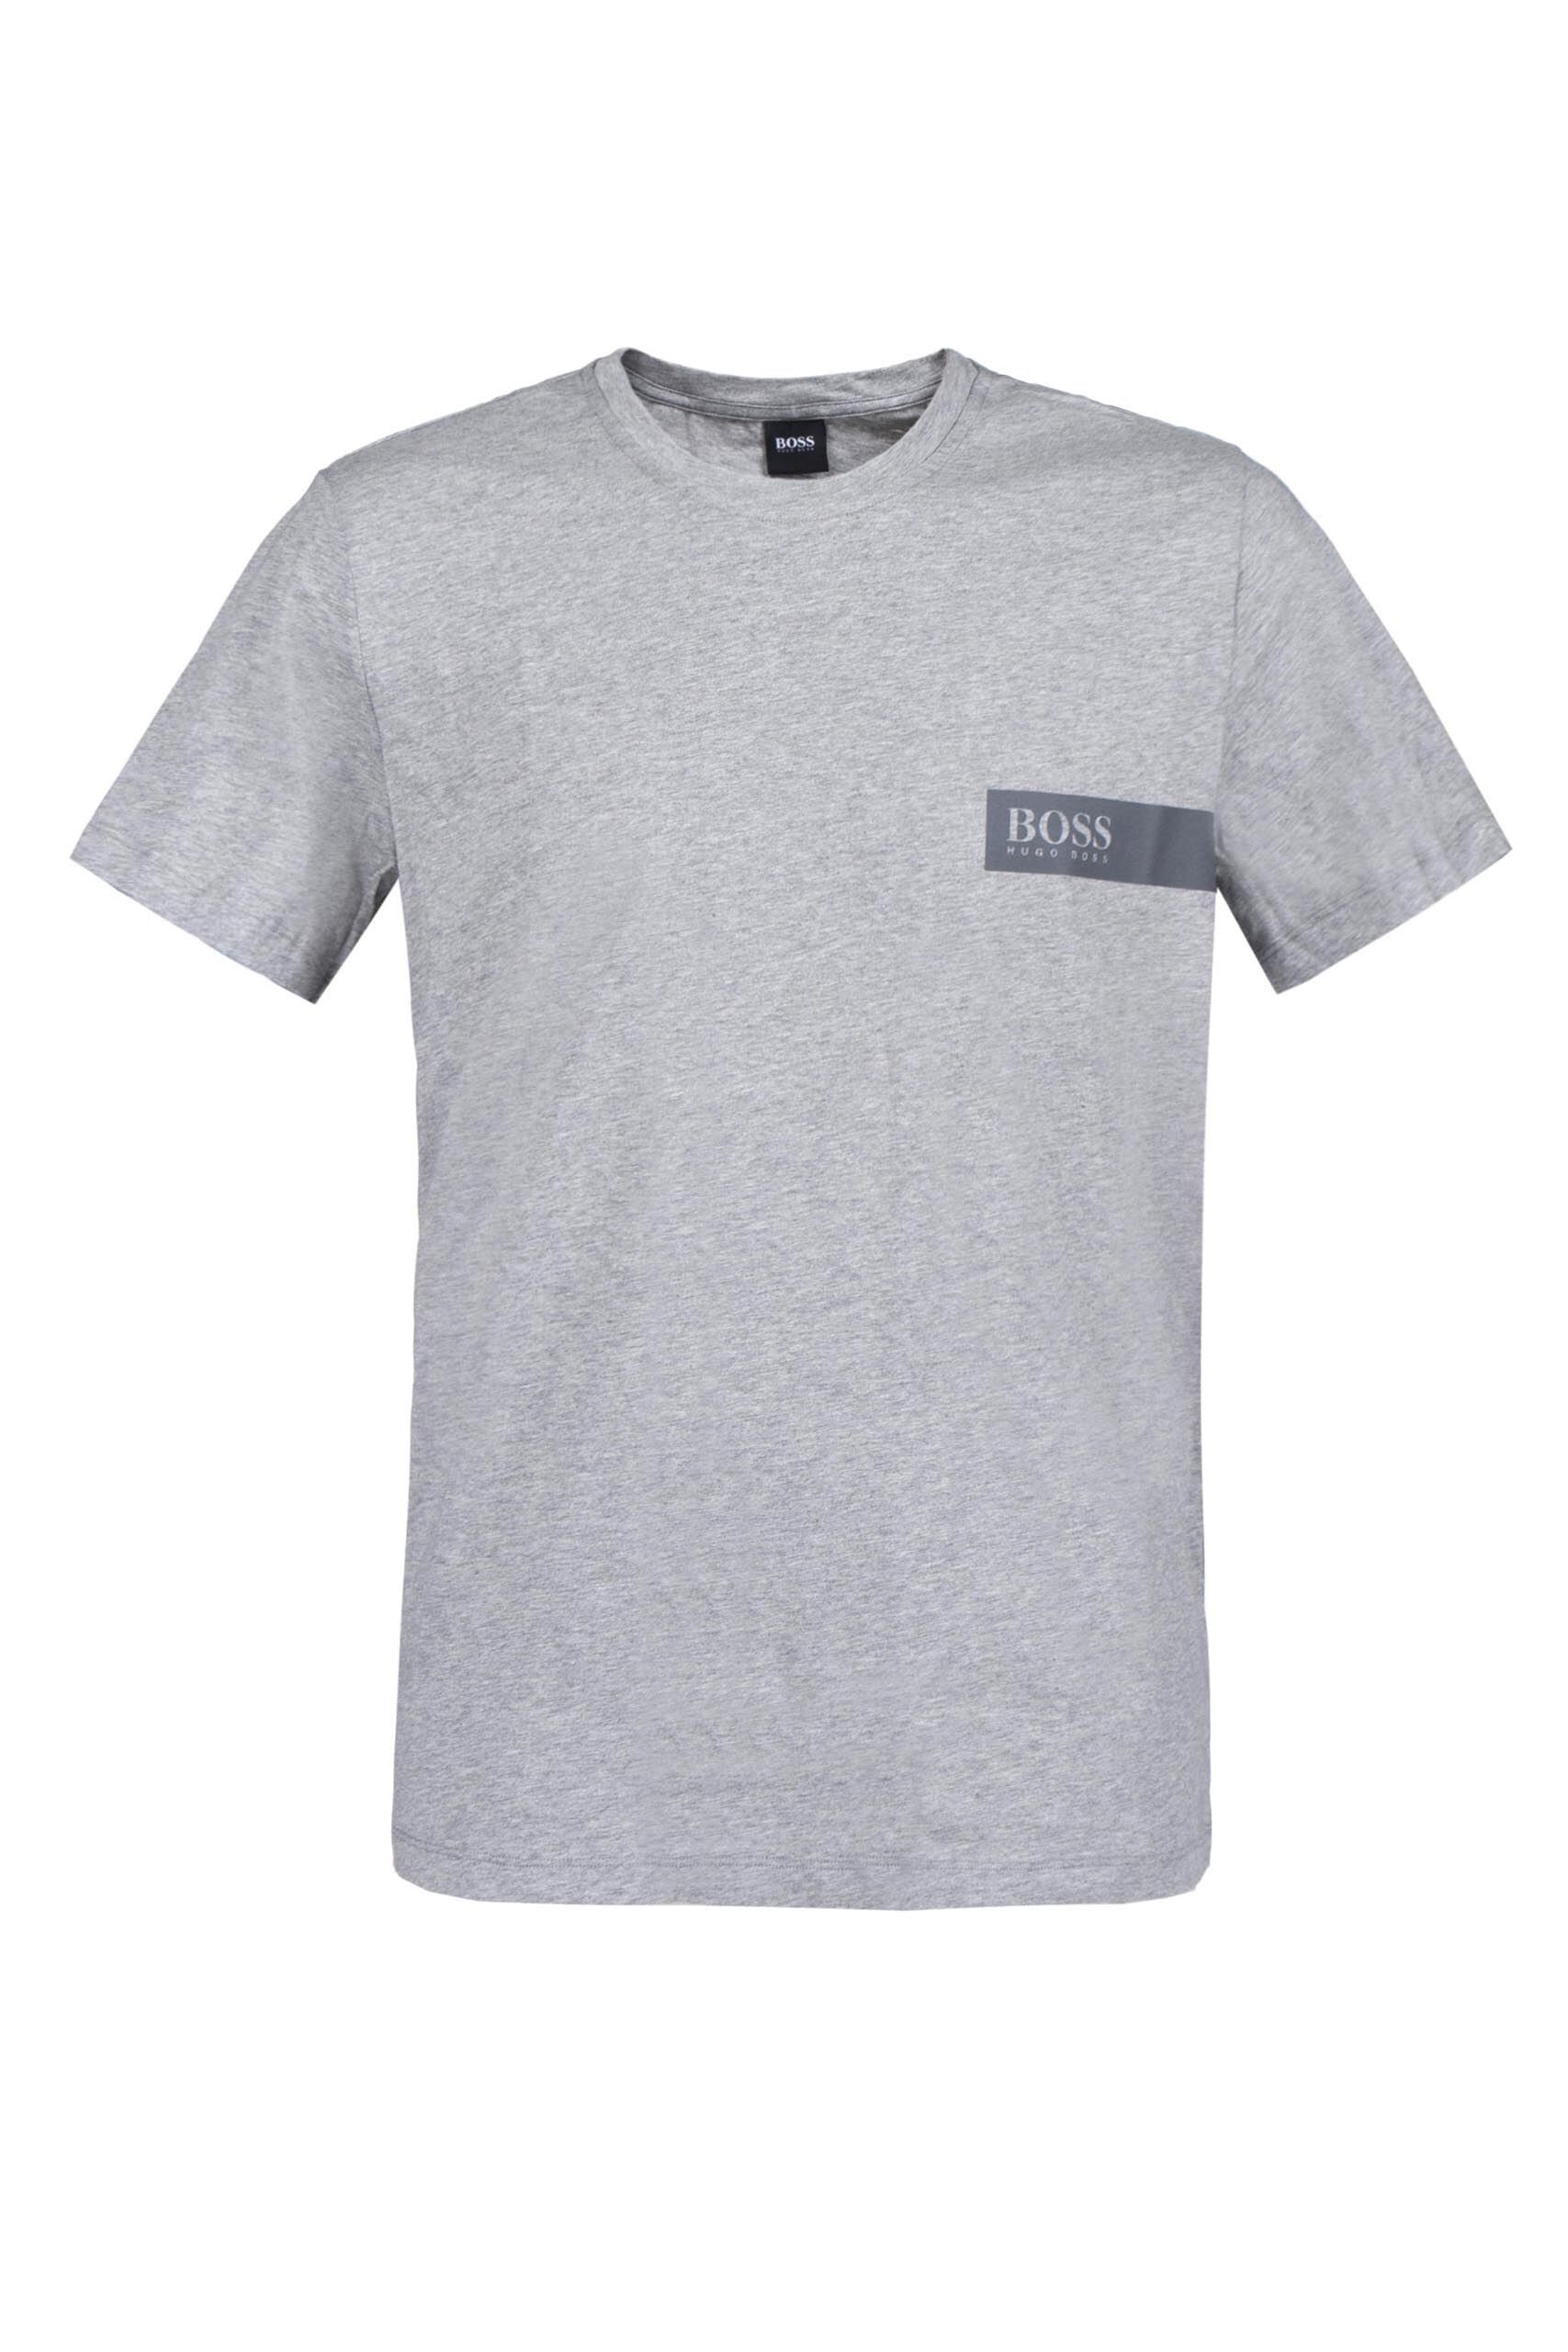 Image of 1 Pack Grey BOSS Round Neck Boss Chest Logo T-Shirt Men's Large - Hugo Boss